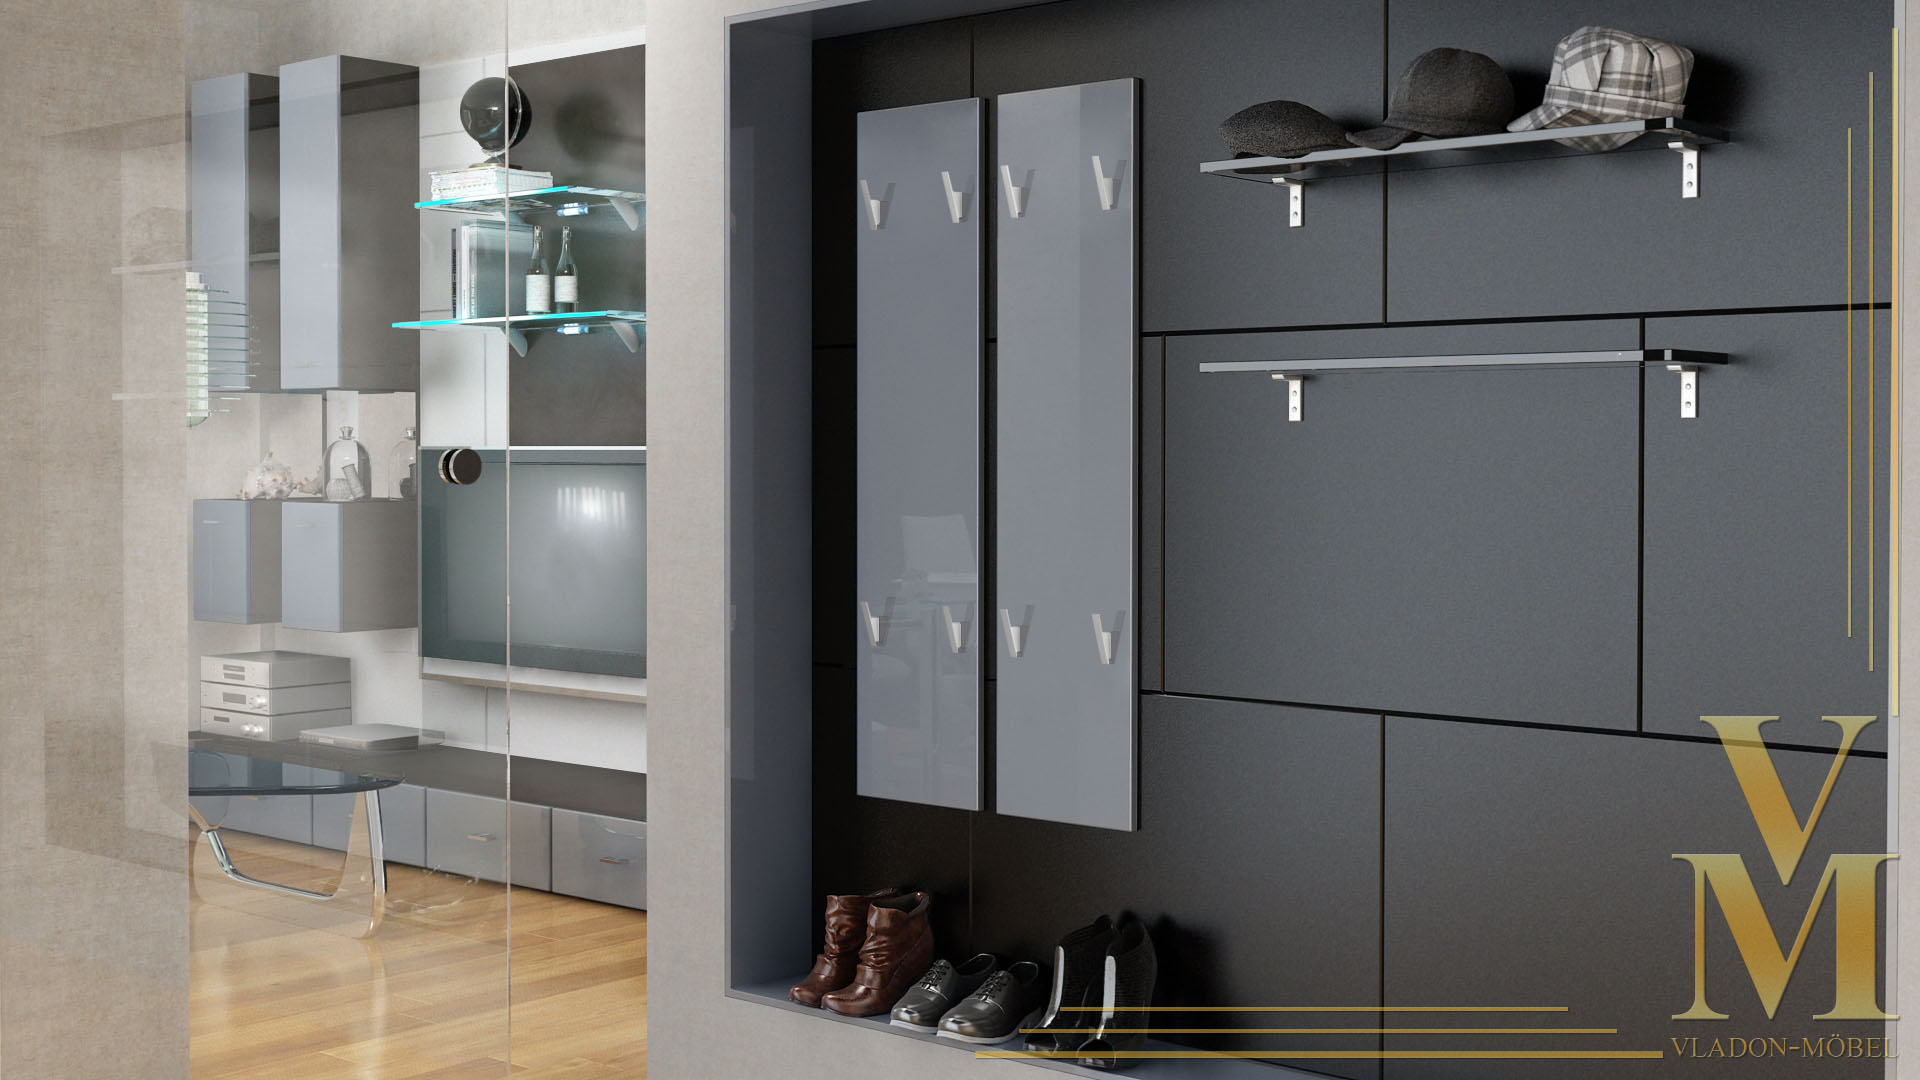 garderobenpaneel wandgarderobe garderobe wandpaneel 120 hochglanz naturt ne ebay. Black Bedroom Furniture Sets. Home Design Ideas